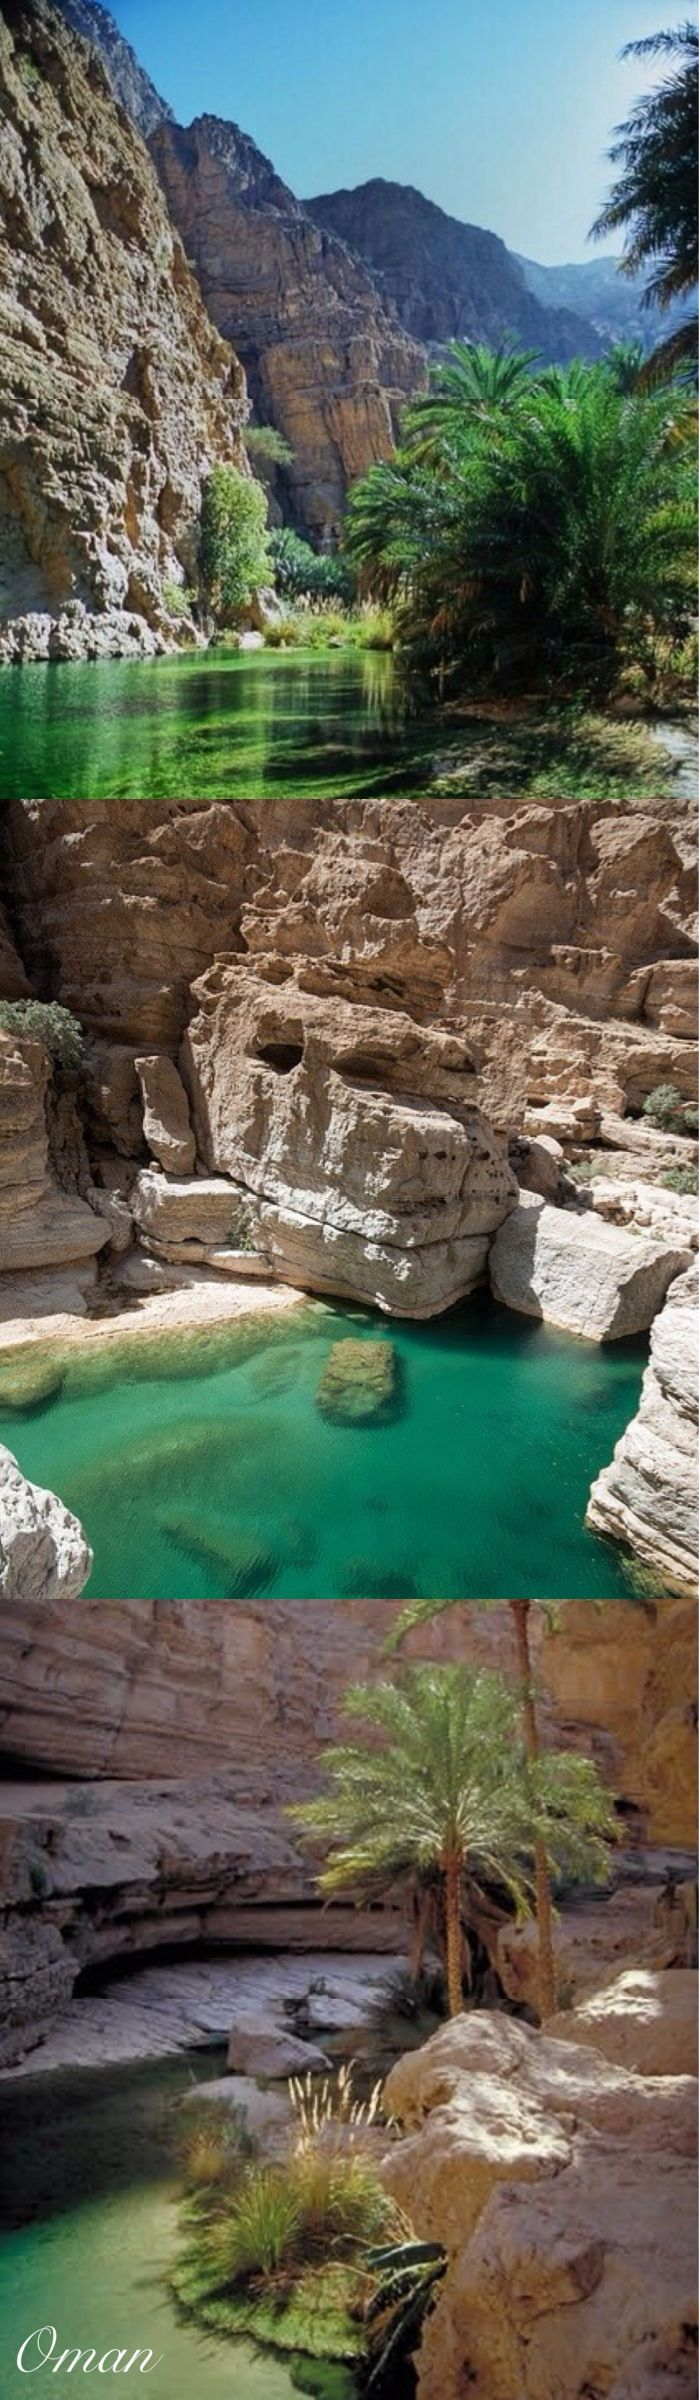 The oldest civilisation in the Arabian Peninsula, Oman. Home to jaw-dropping landscapes, a rich culture and over 600 miles of coastline, not to mention warm, sunny climates. Let us help you plan your trip in Iran, head to theculturetrip.com.